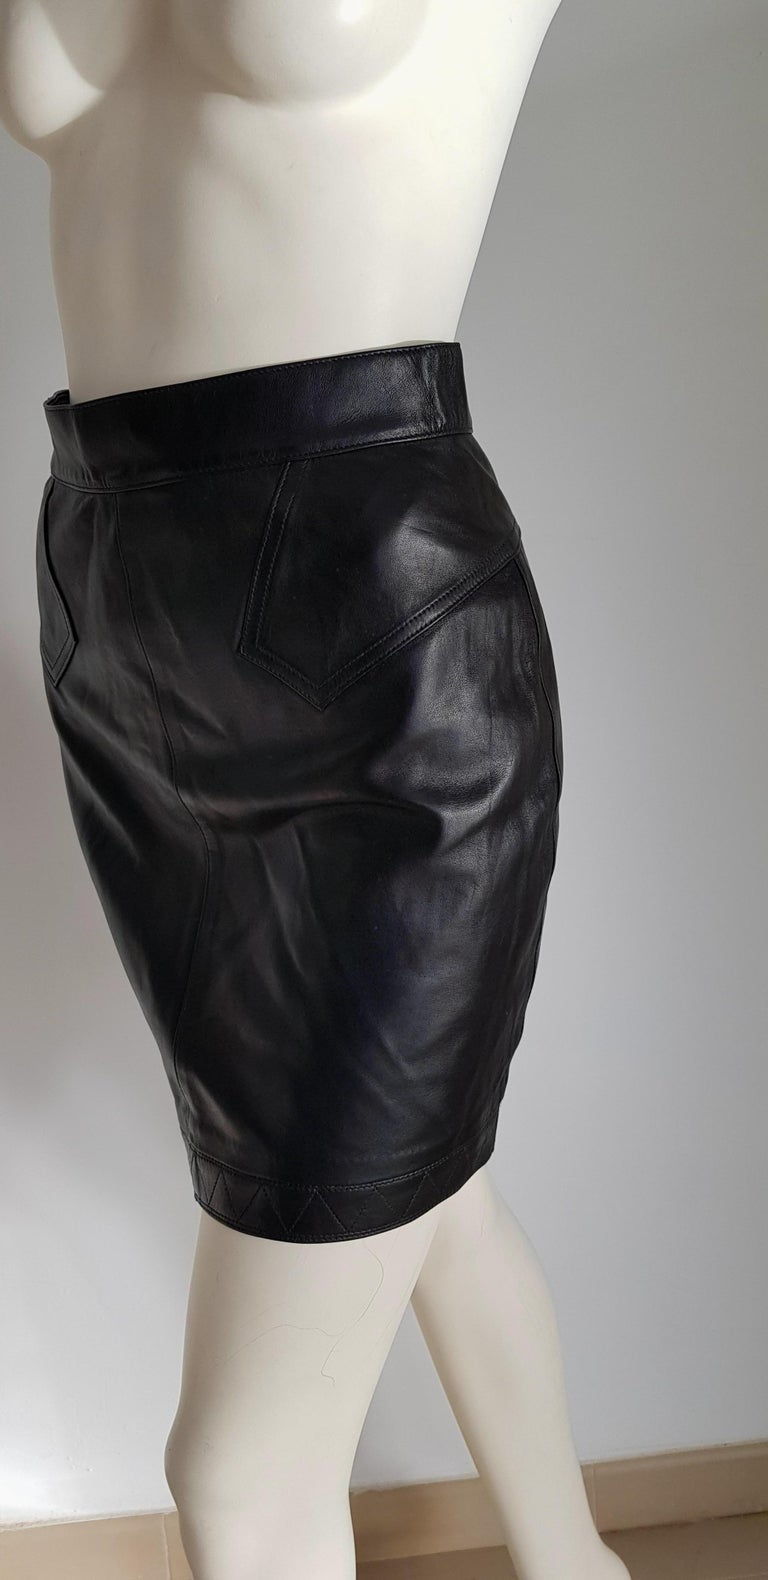 ALAIA black leather mini skirt - Unworn, New.  SIZE: lenght 46, waist circumference 72, hip circumference 96.  TO CONVERT: cm x 0.39 = inch. Measurements provided as a courtesy only, not a guarantee of fit.  By